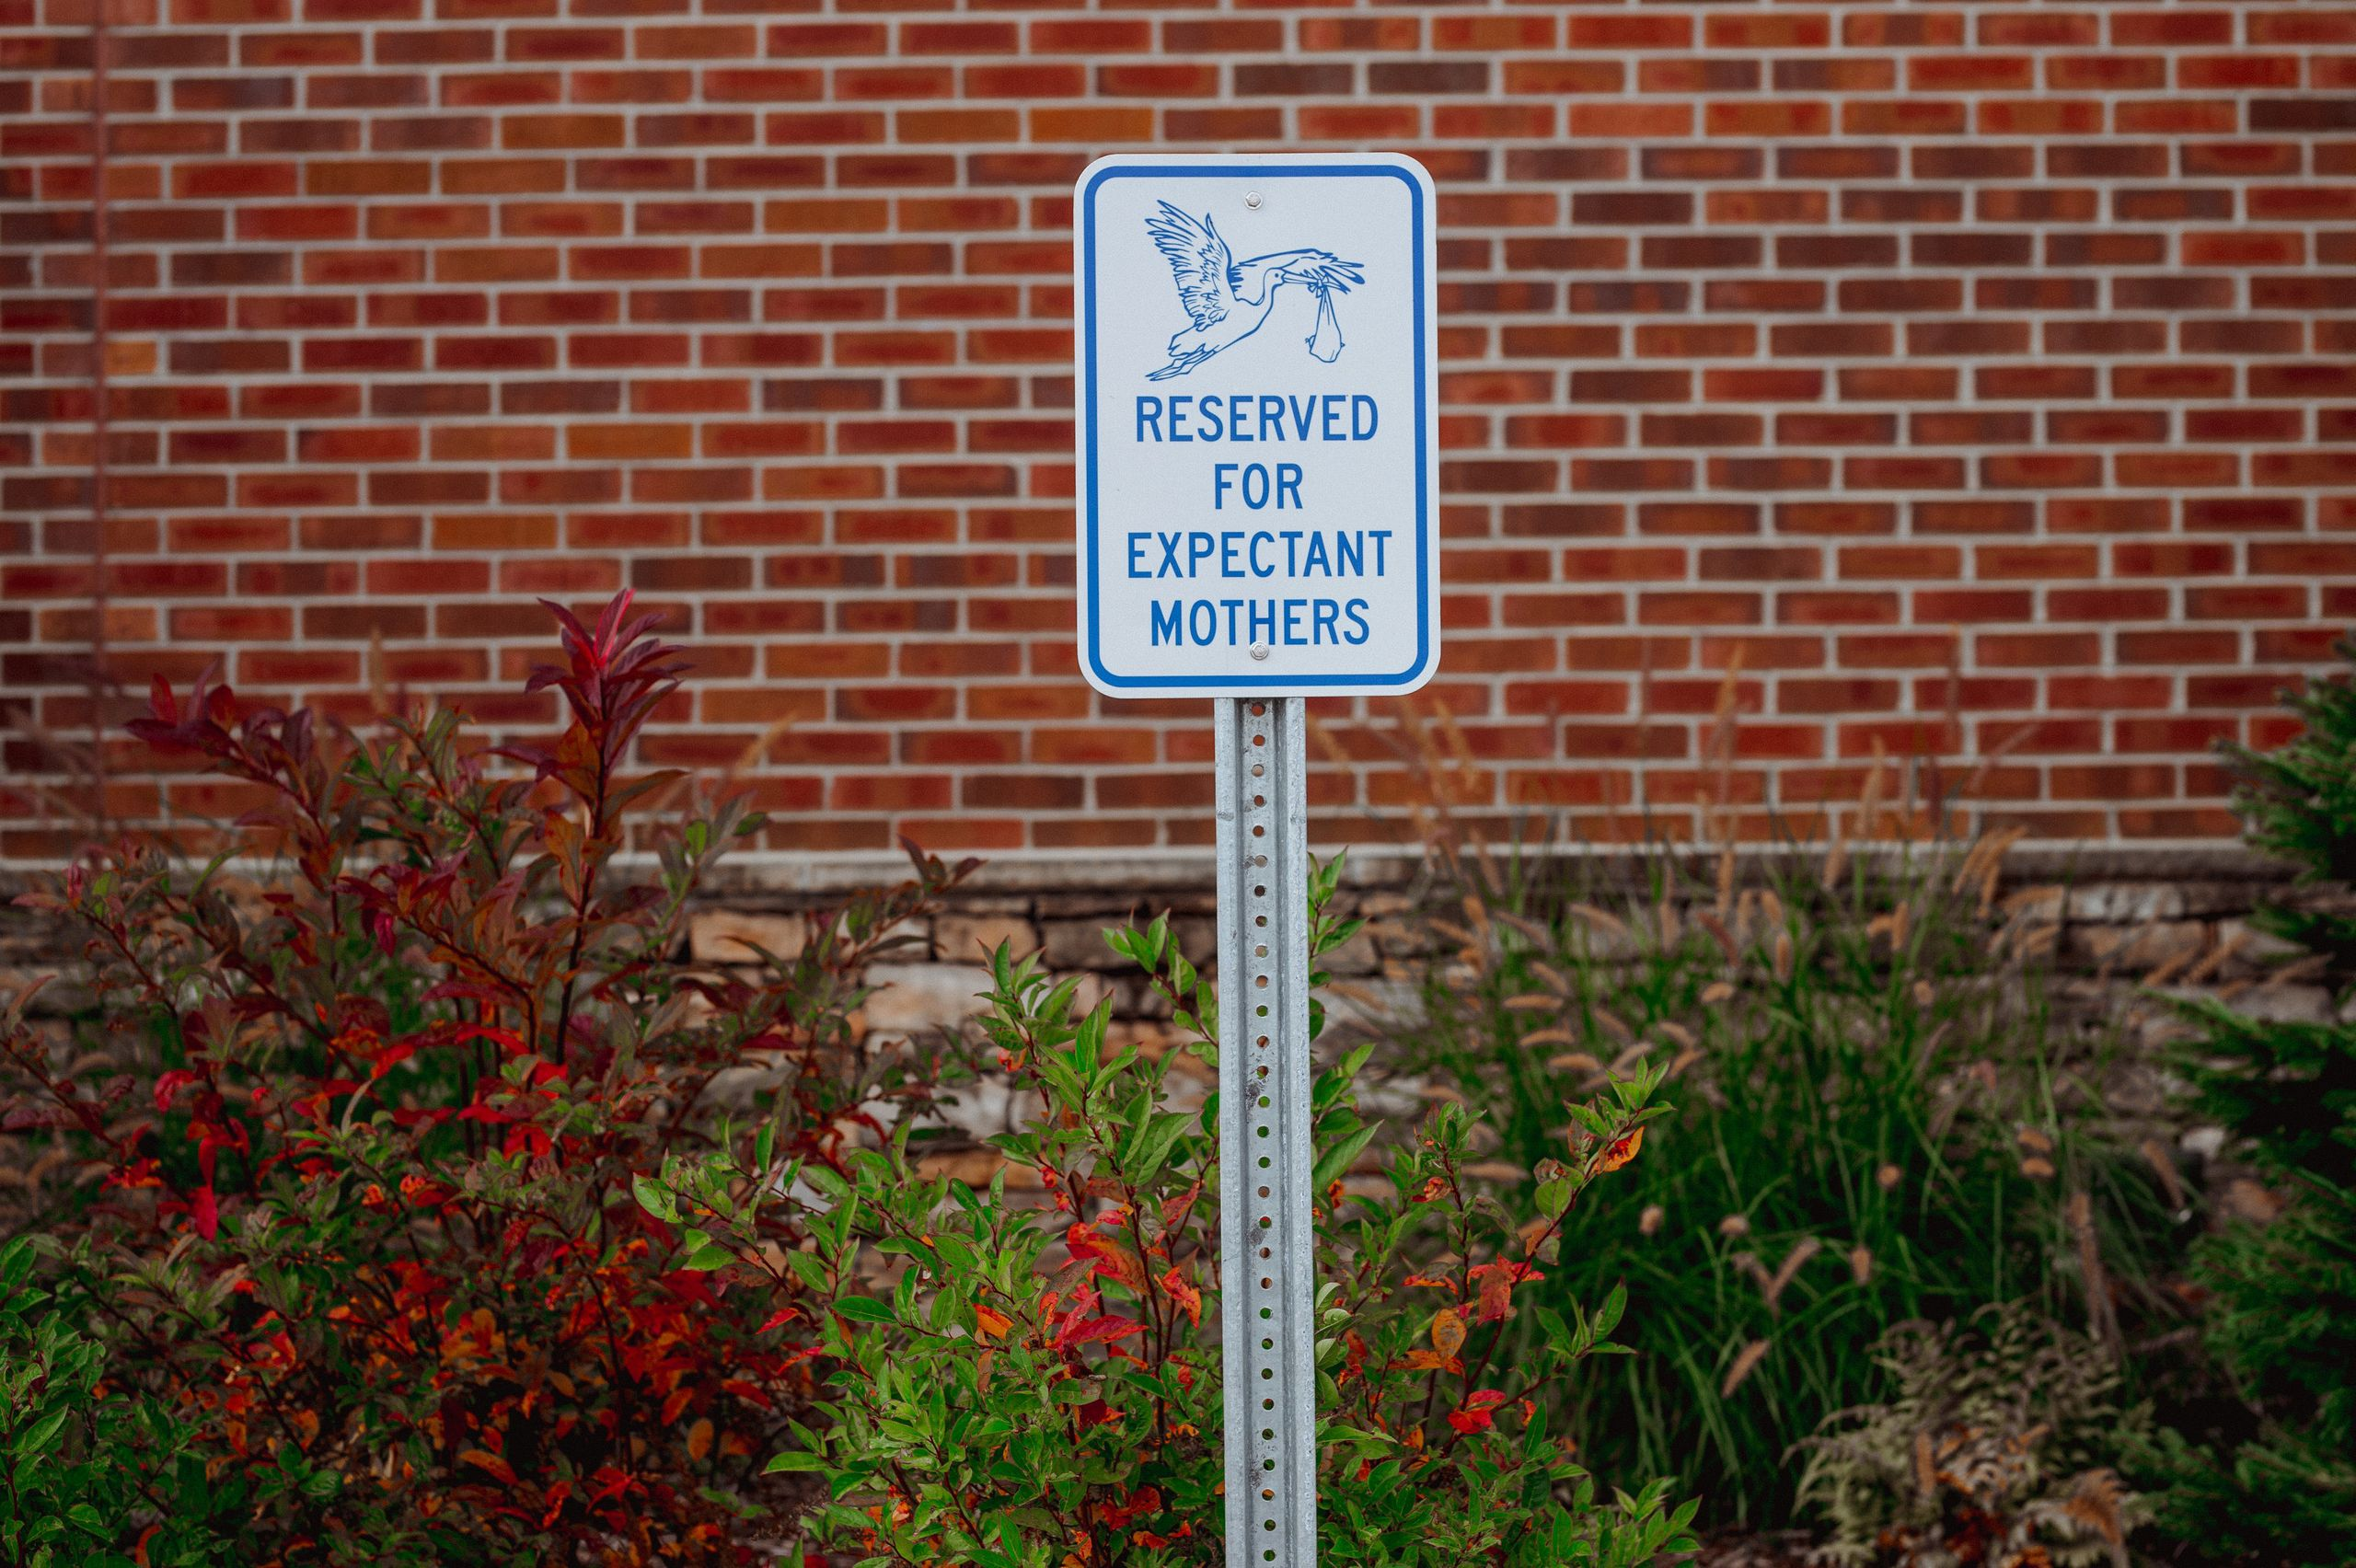 Parking spots are still reserved for expectant moms at Blue Ridge Hospital, but labor-and-delivery services are no longer ava